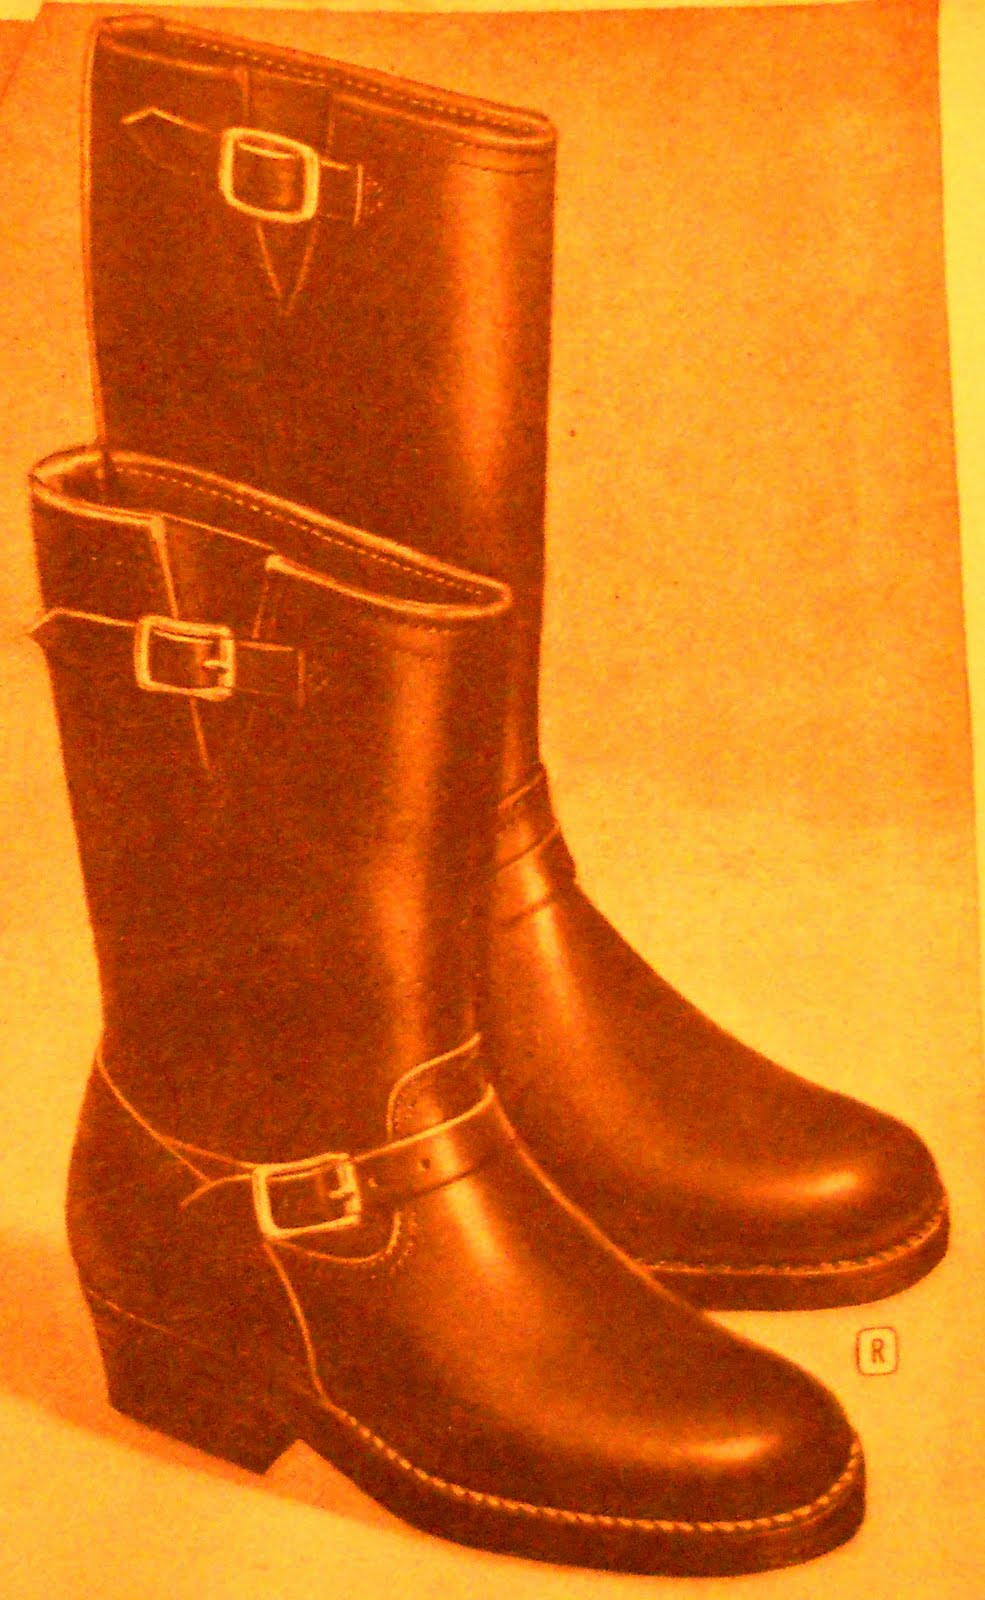 Vintage Engineer Boots Engineer Boot Lexicon Part Vi